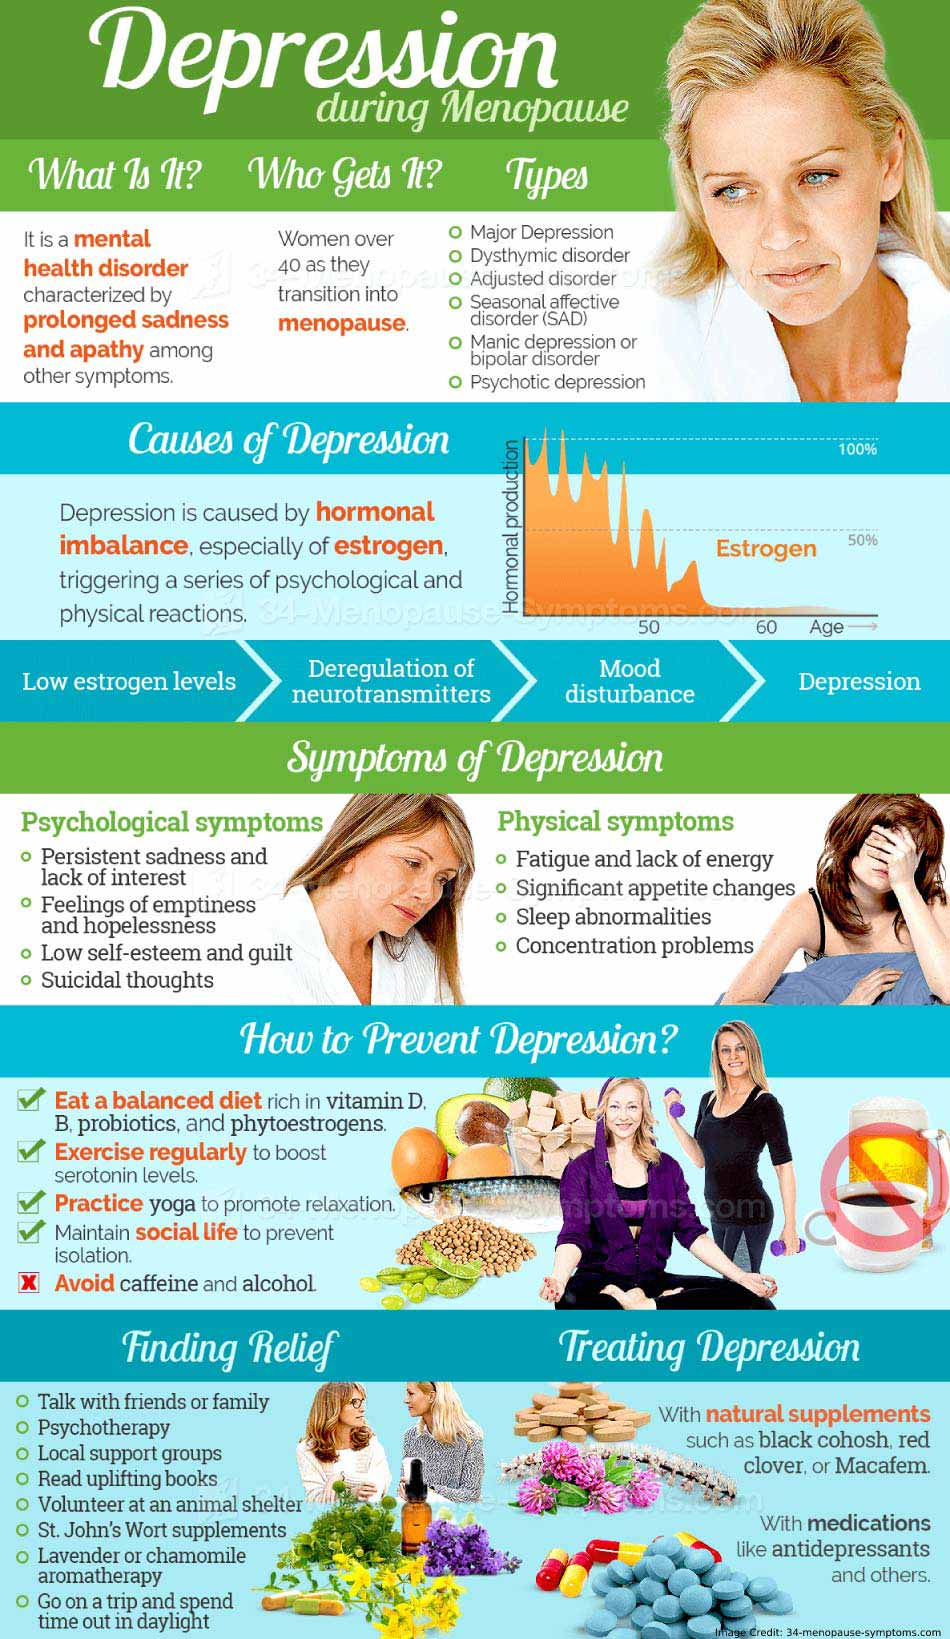 Depression During Menopause Info